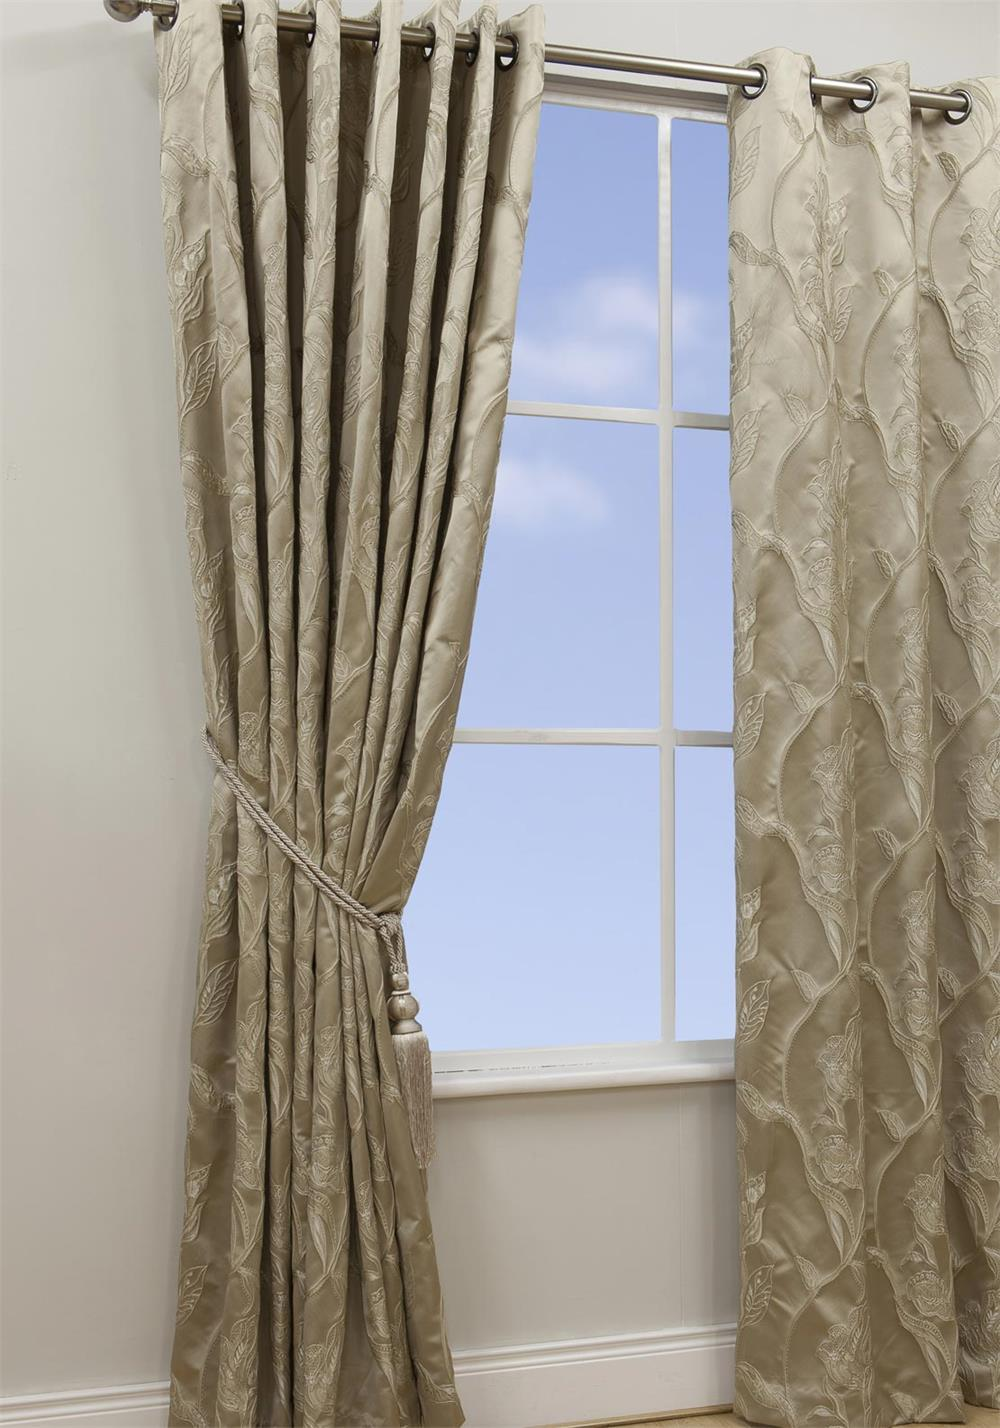 Scatterbox Chelsea Parchment Fully Lined Ready-Made Curtains, Beige